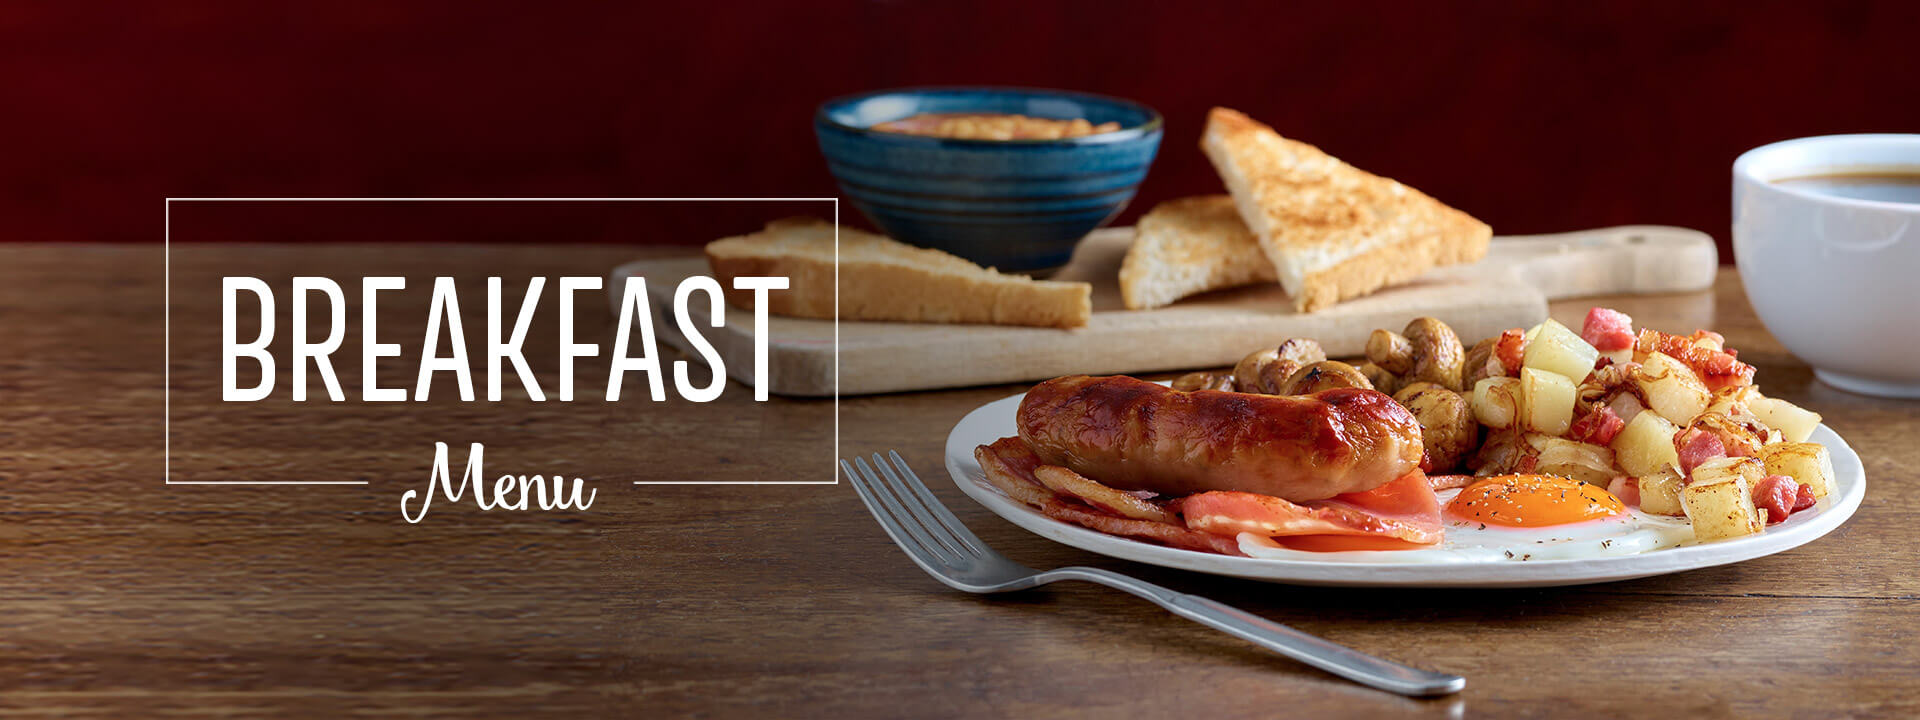 Breakfast at Toby Carvery Burnt Tree Island - Book Now